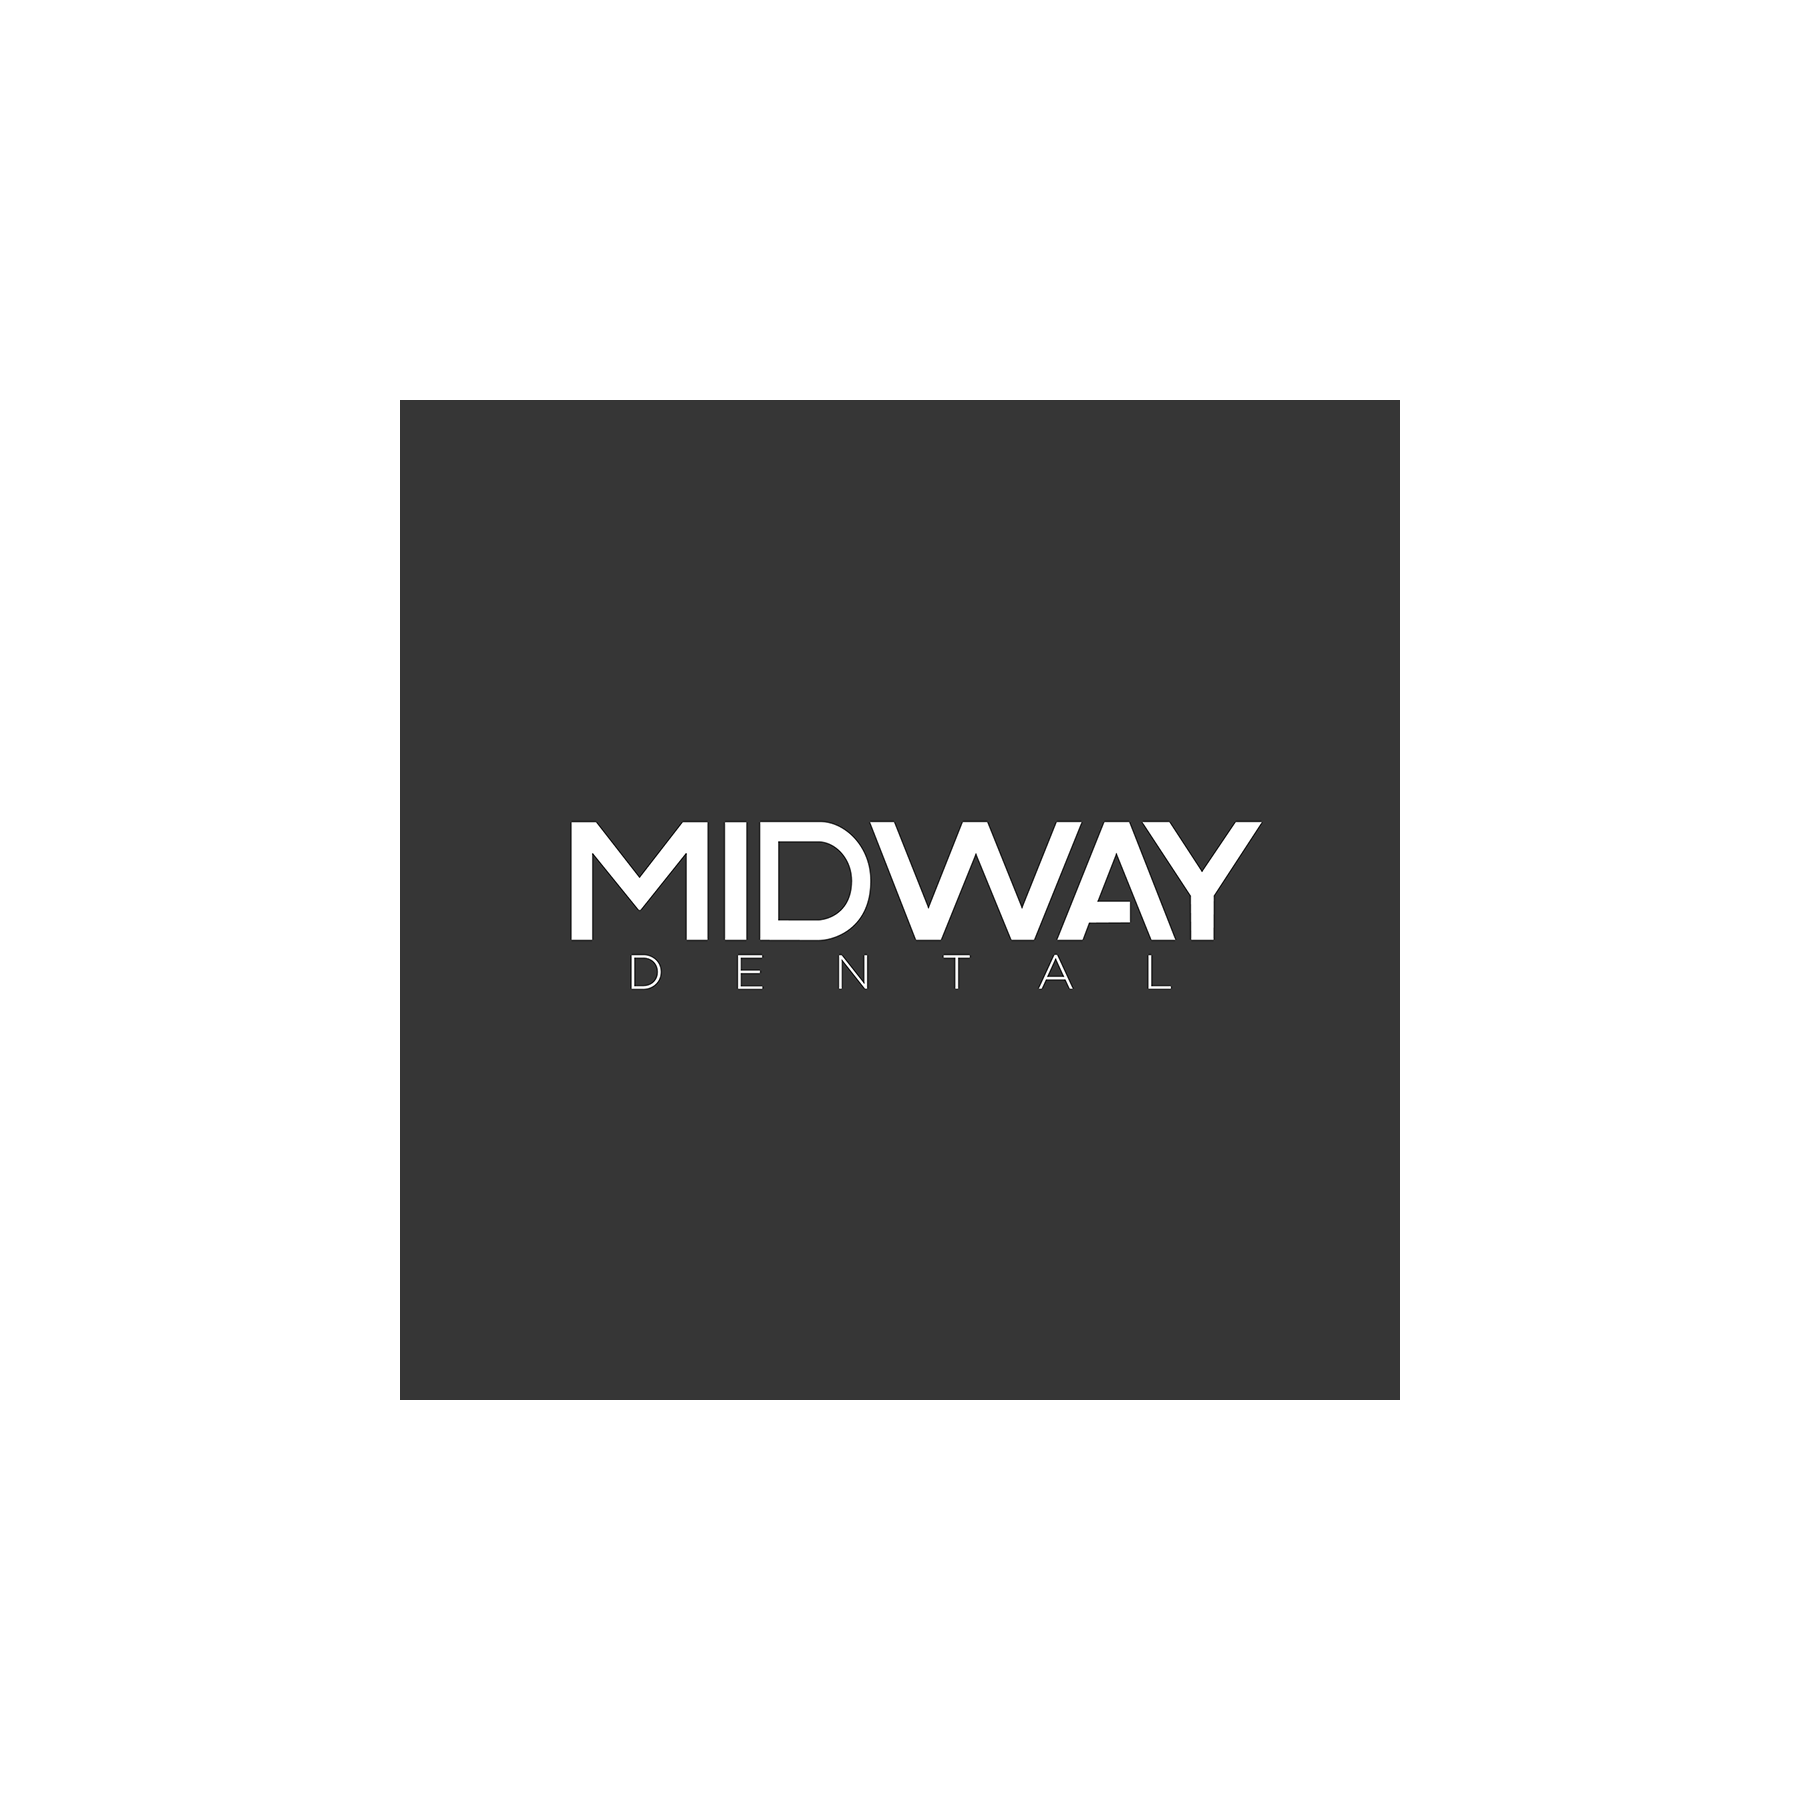 midway-1800